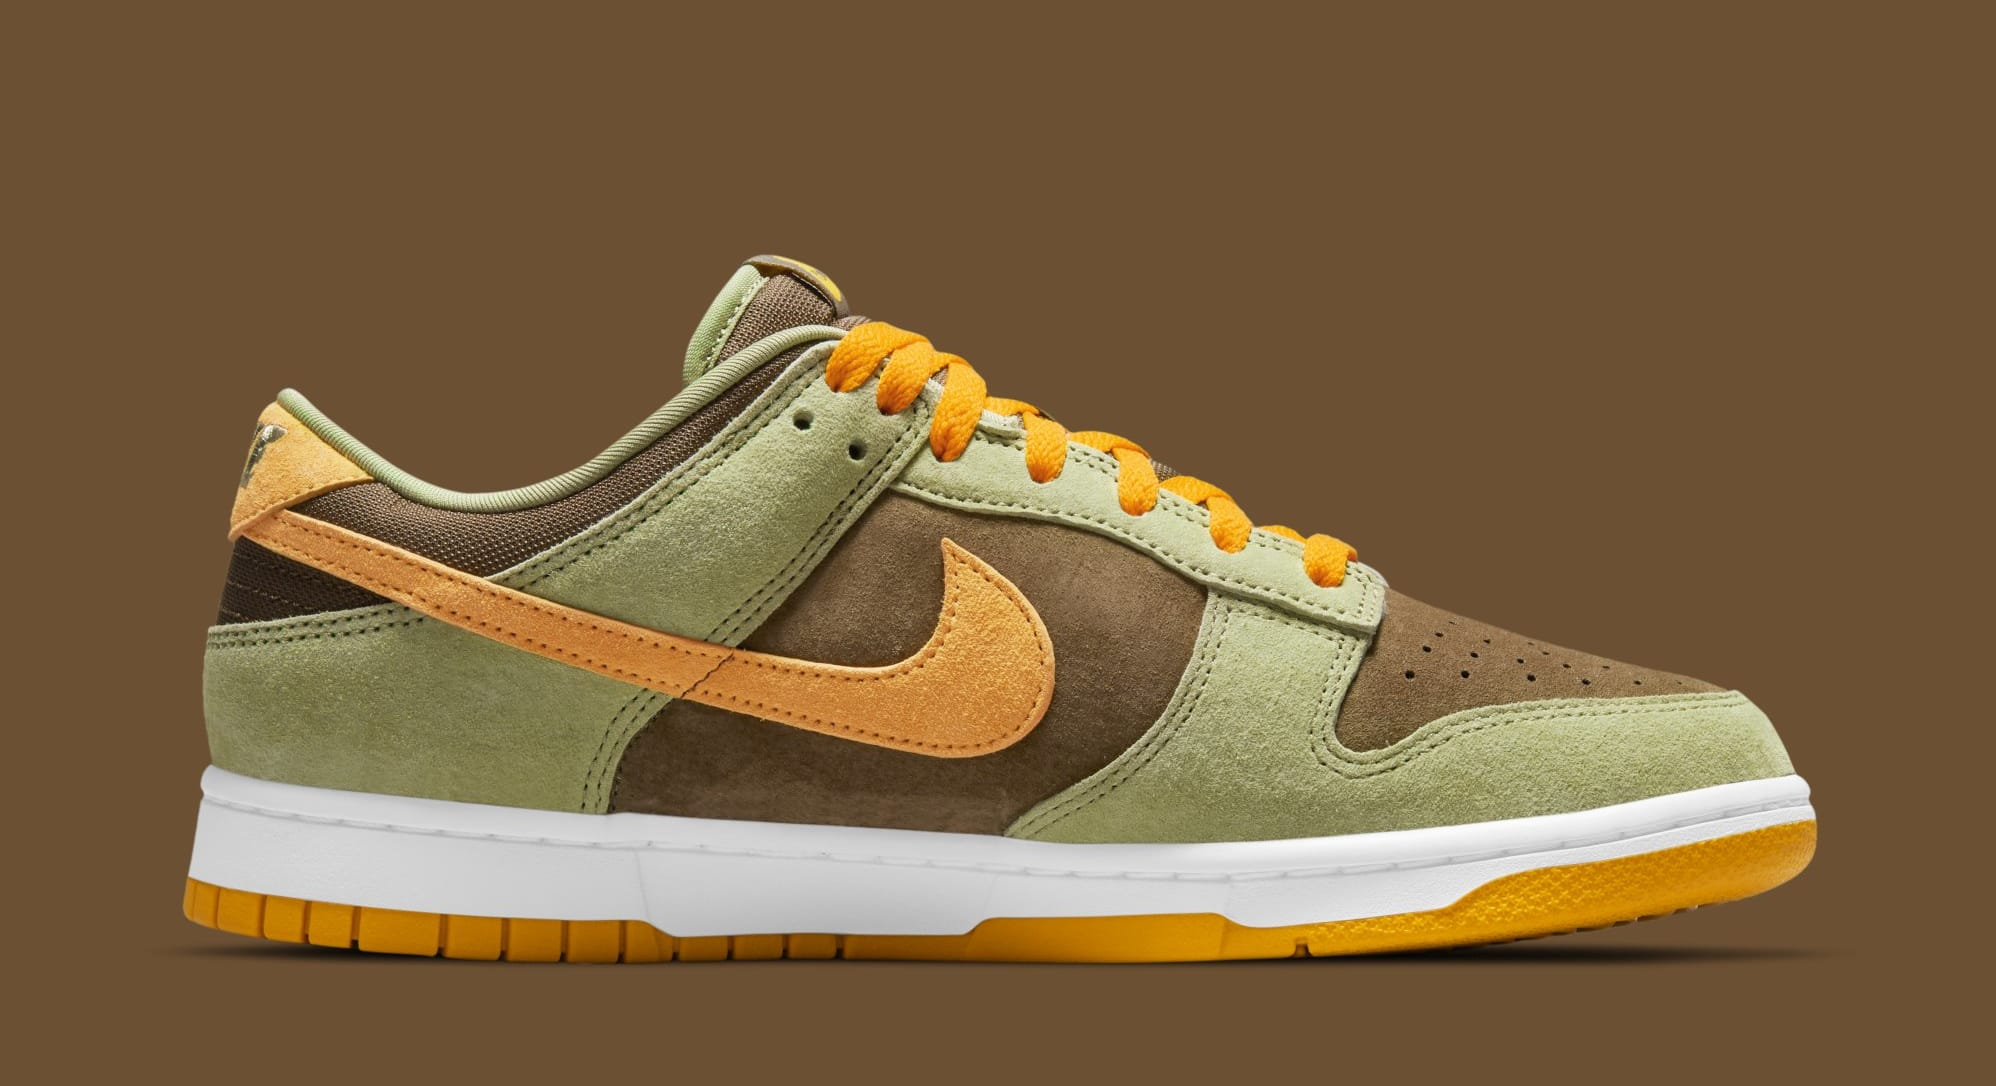 Nike Dunk Low 'Dusty Olive' DH5360-300 (Medial)